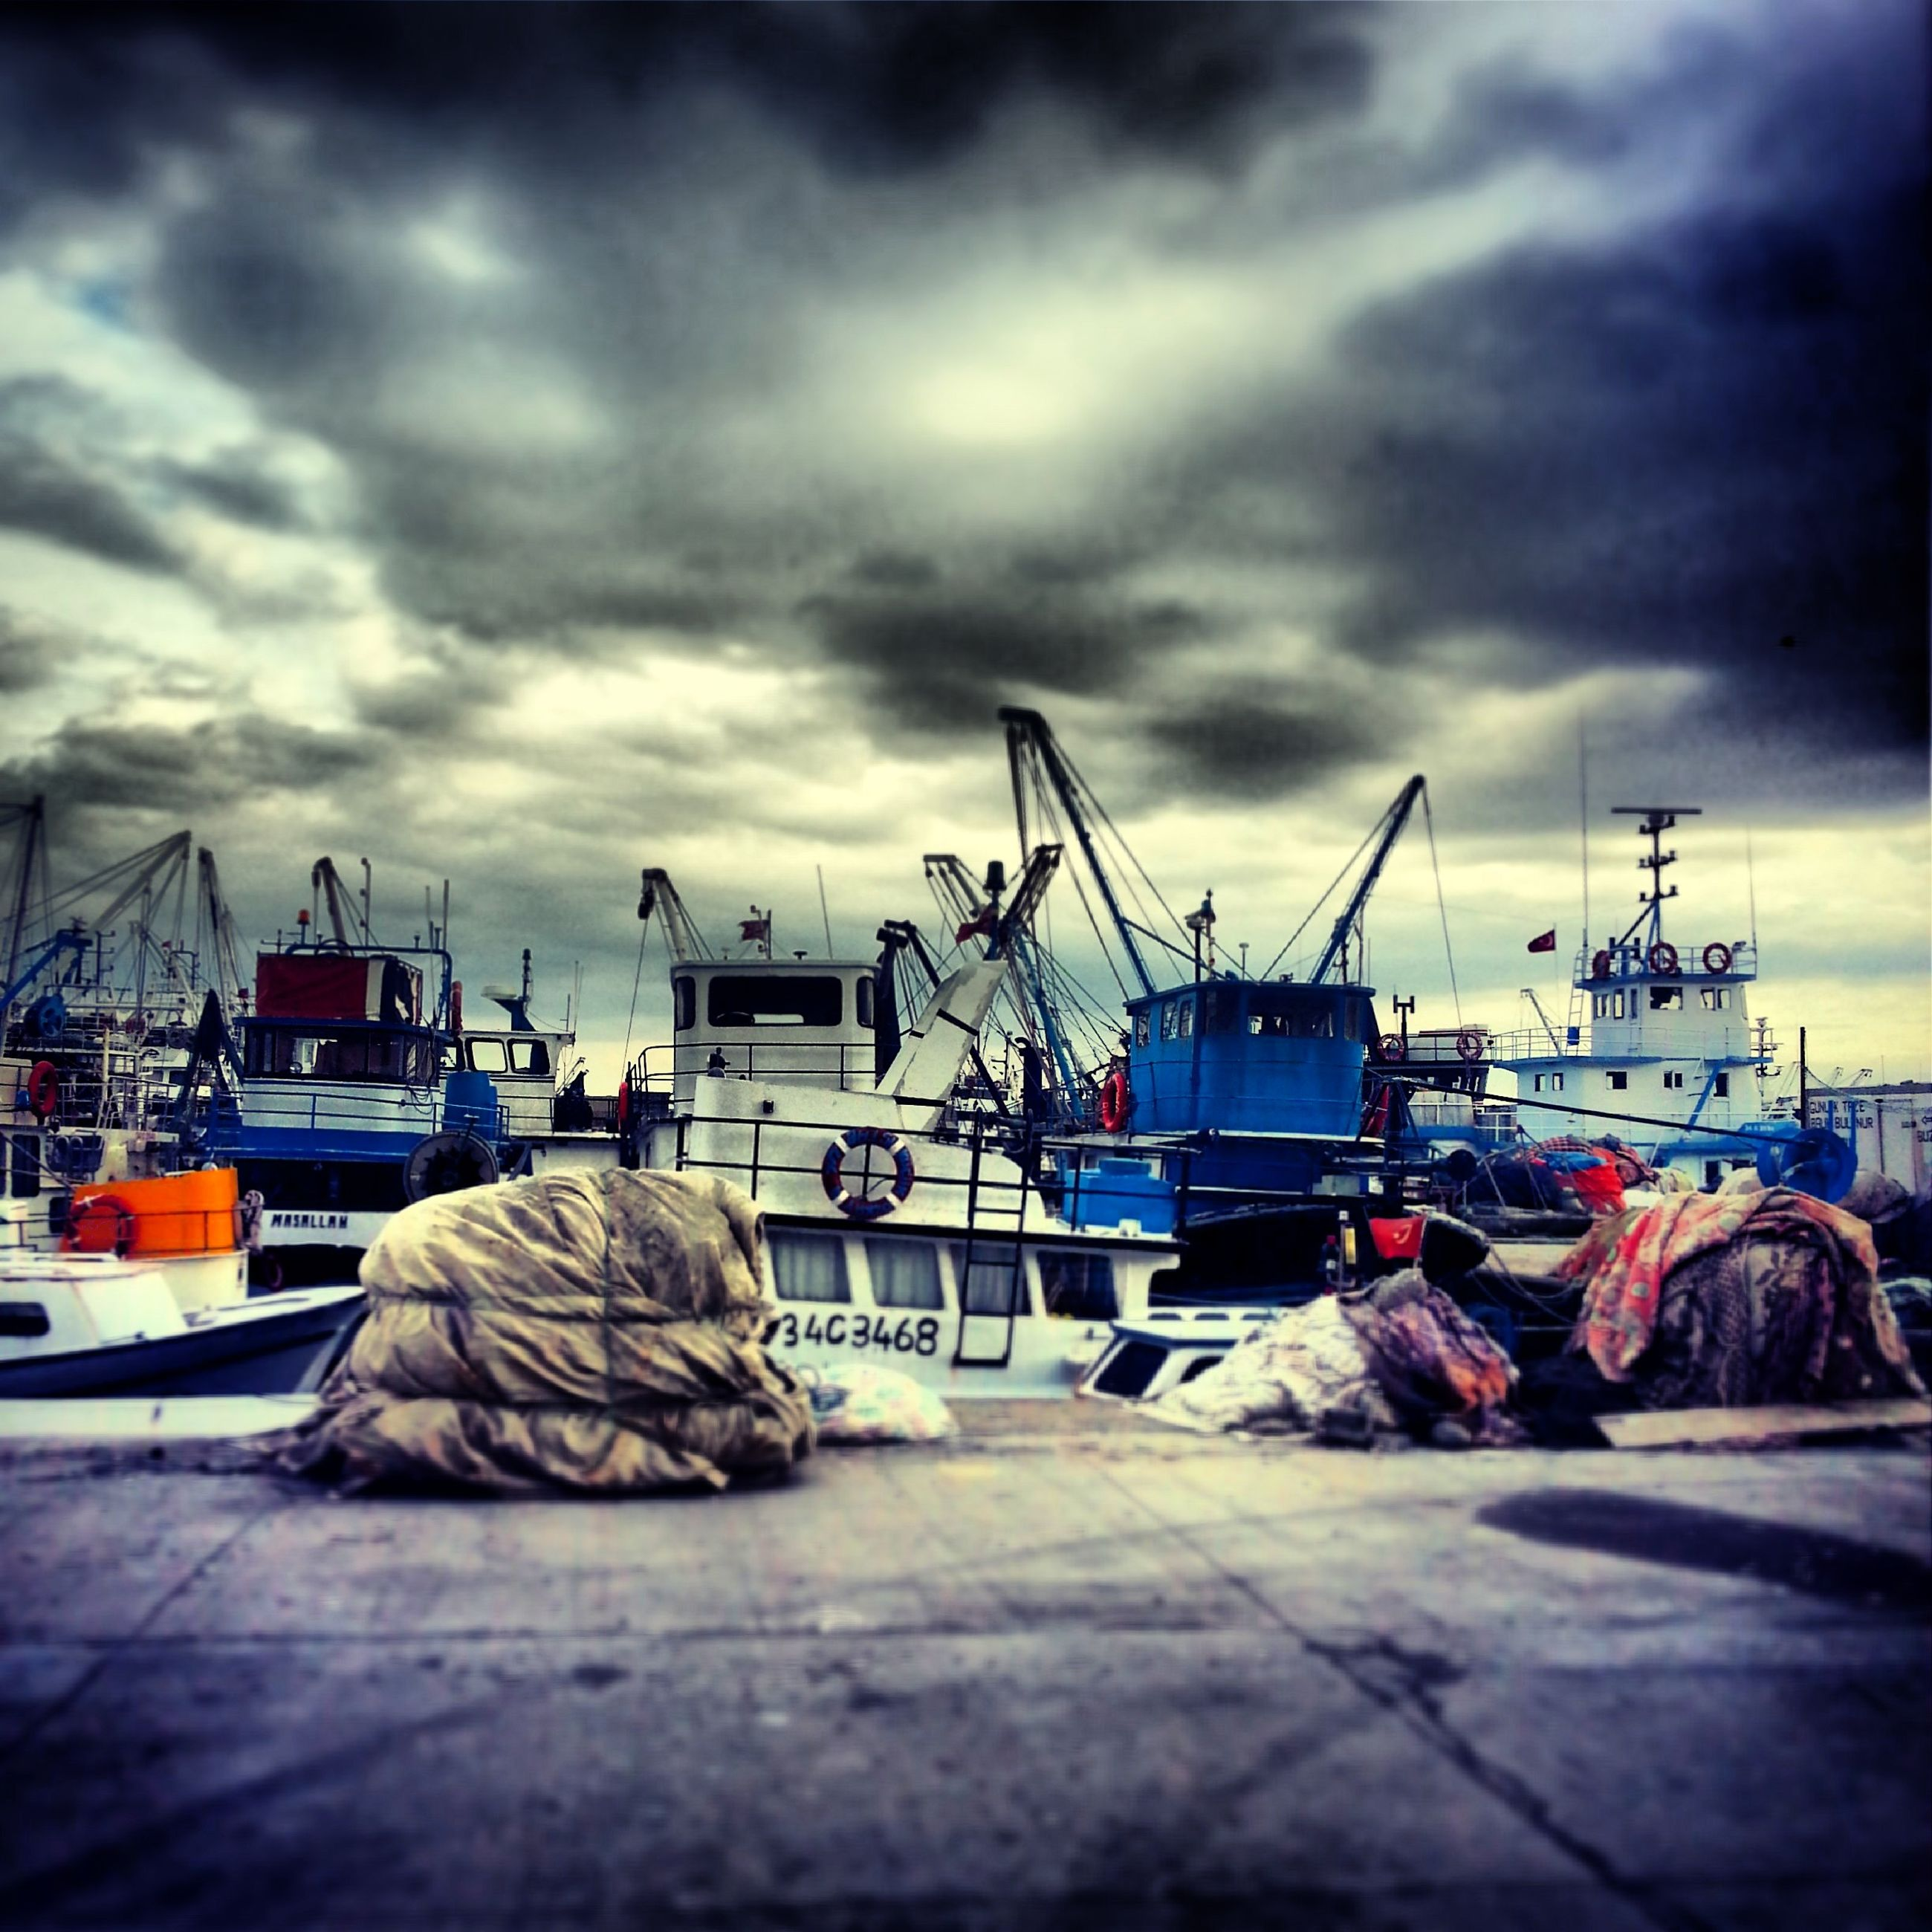 sky, transportation, nautical vessel, mode of transport, cloud - sky, cloudy, moored, boat, cloud, harbor, overcast, weather, sea, fishing industry, outdoors, day, mast, in a row, group of objects, travel